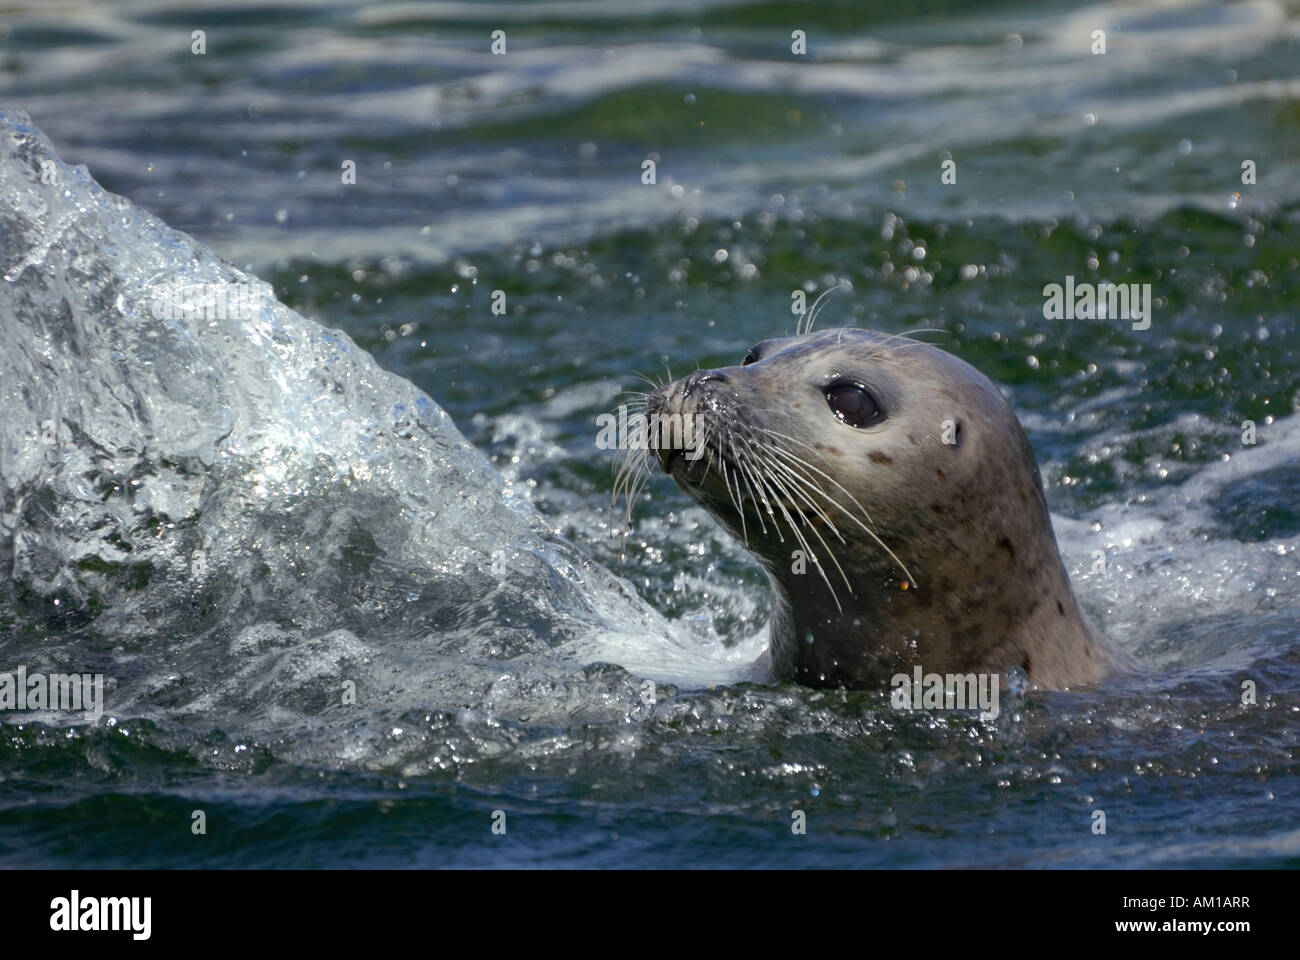 Portrait of a Seal (Phoca vitulina) - Stock Image